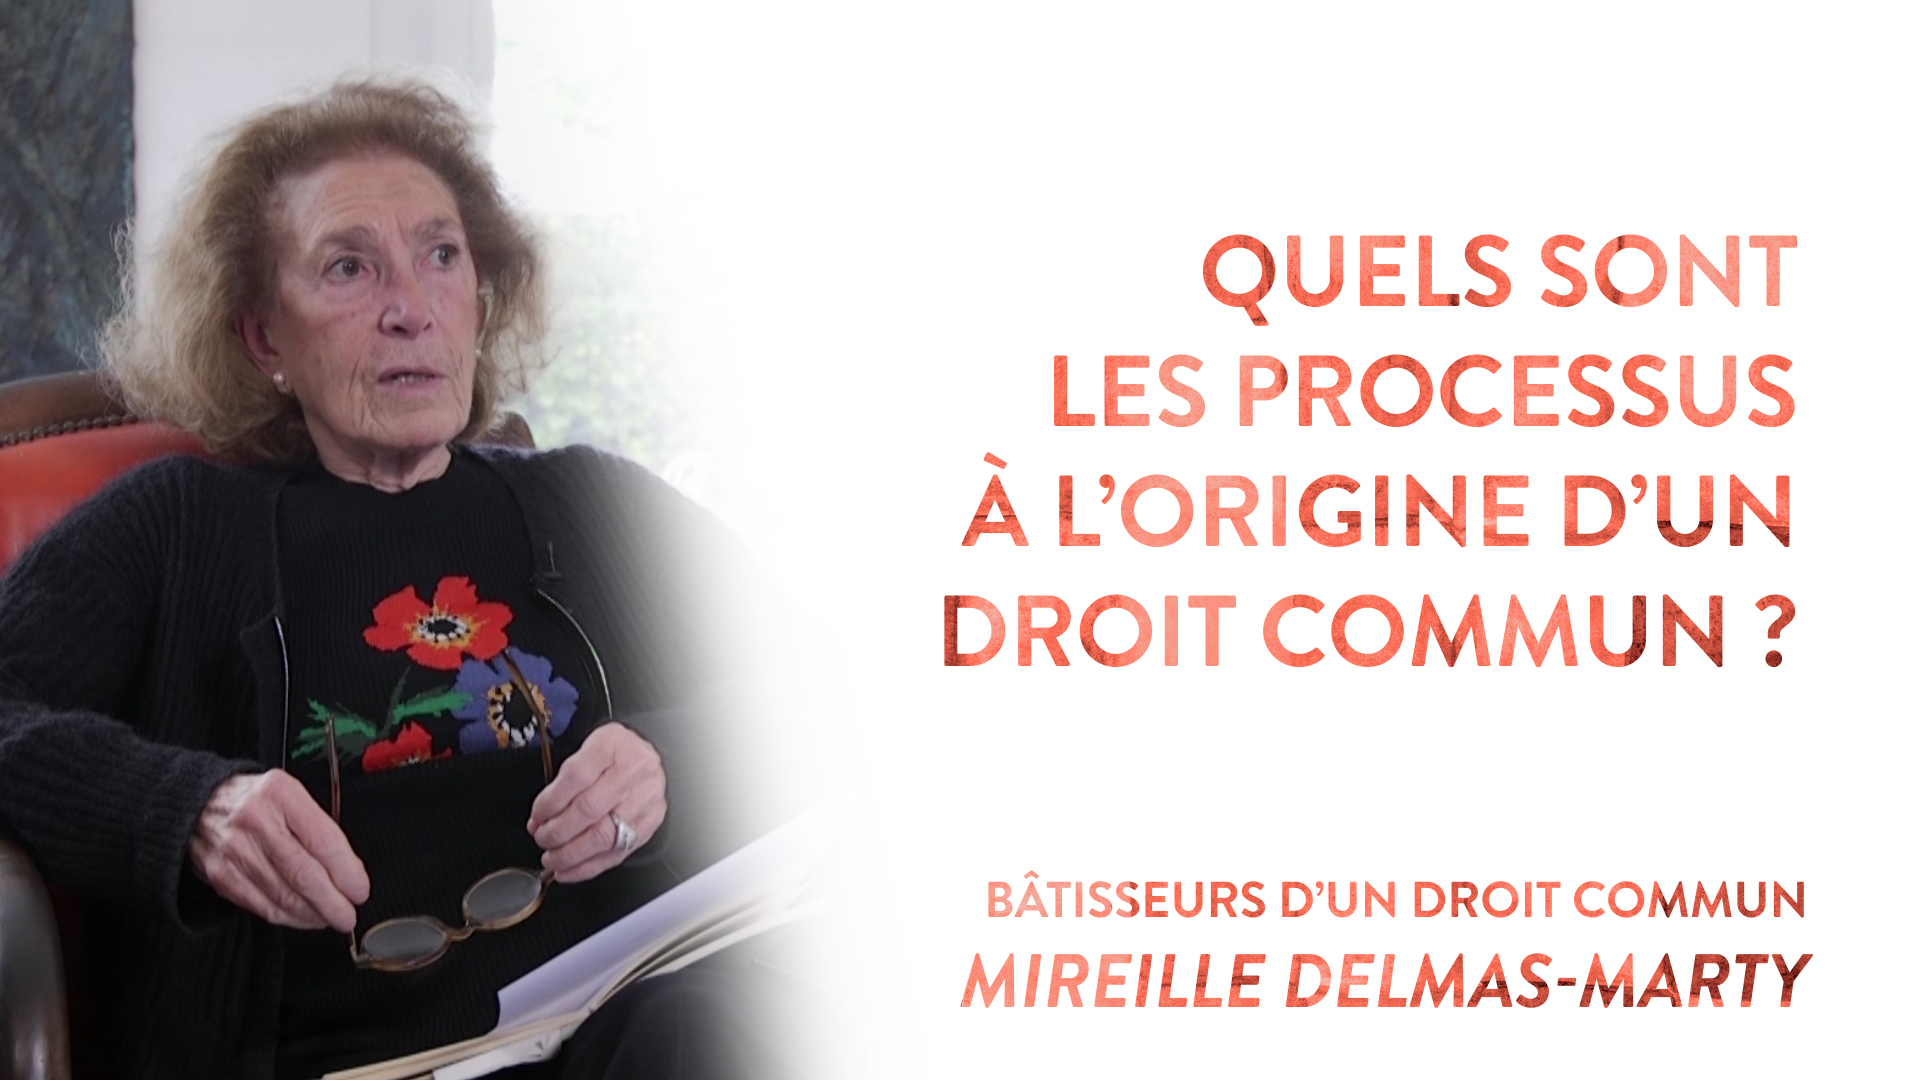 Mireille Delmas-Marty question 4